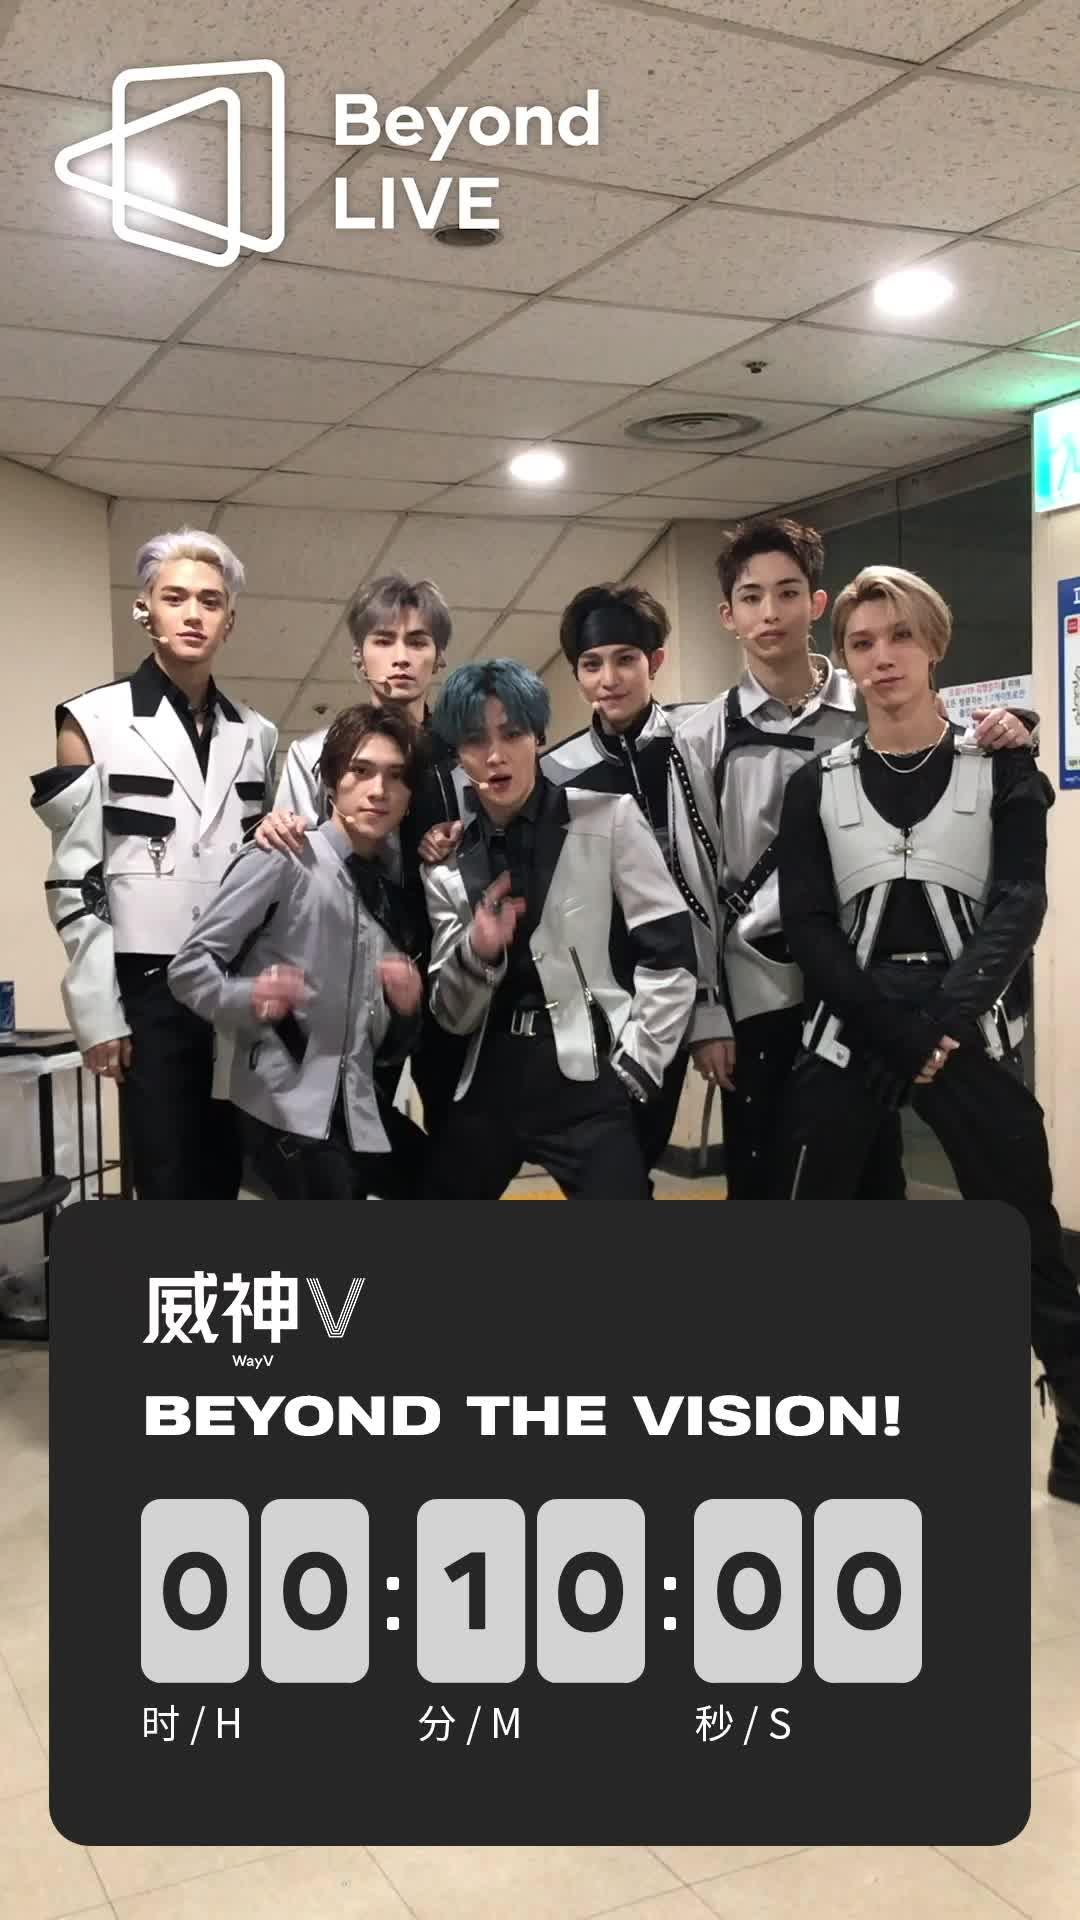 WayV - Beyond the Vision D-DAY🔥THE COUNTDOWN BEGINS : 10minutes to go⏰